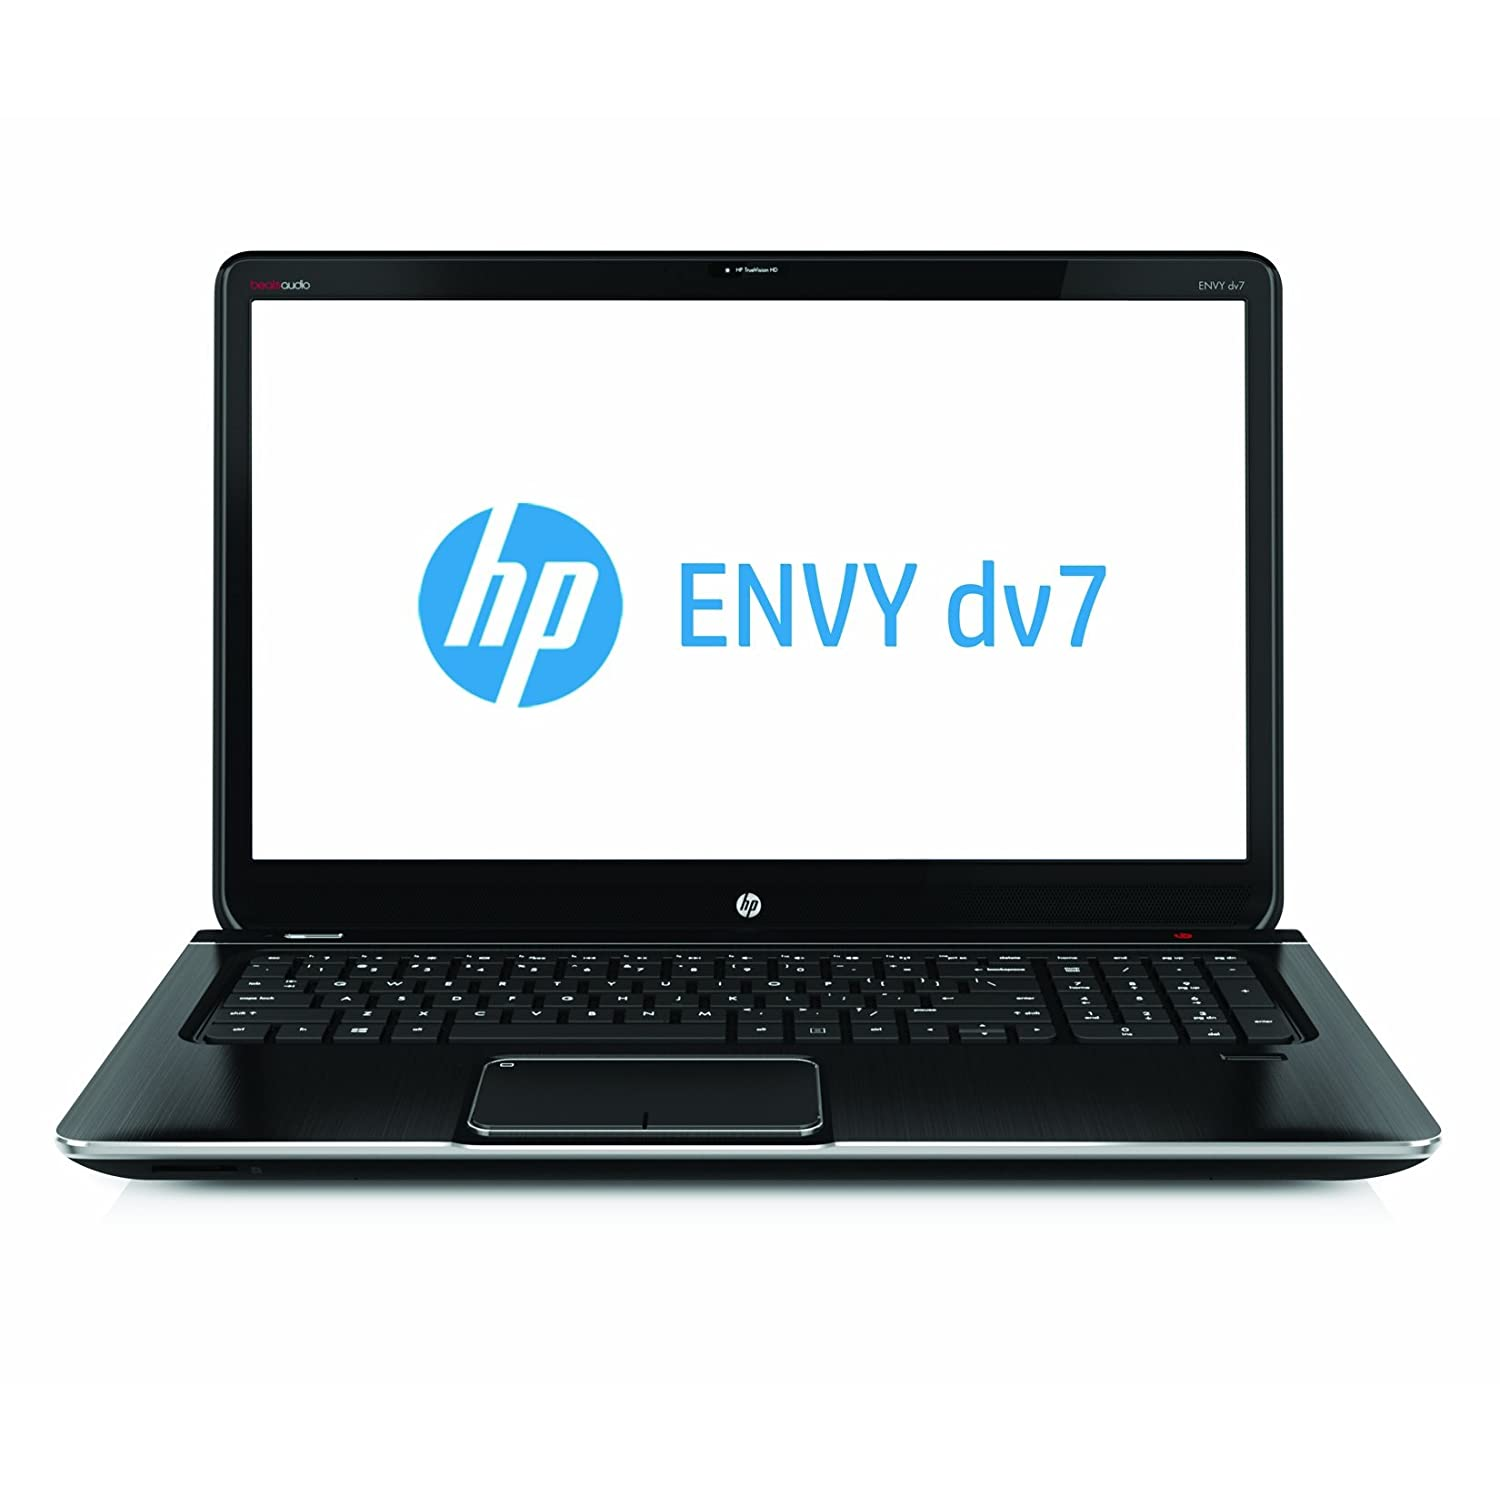 hp envy dv7 7240us laptop review hp envy dv7 7230us review hp envy dv7